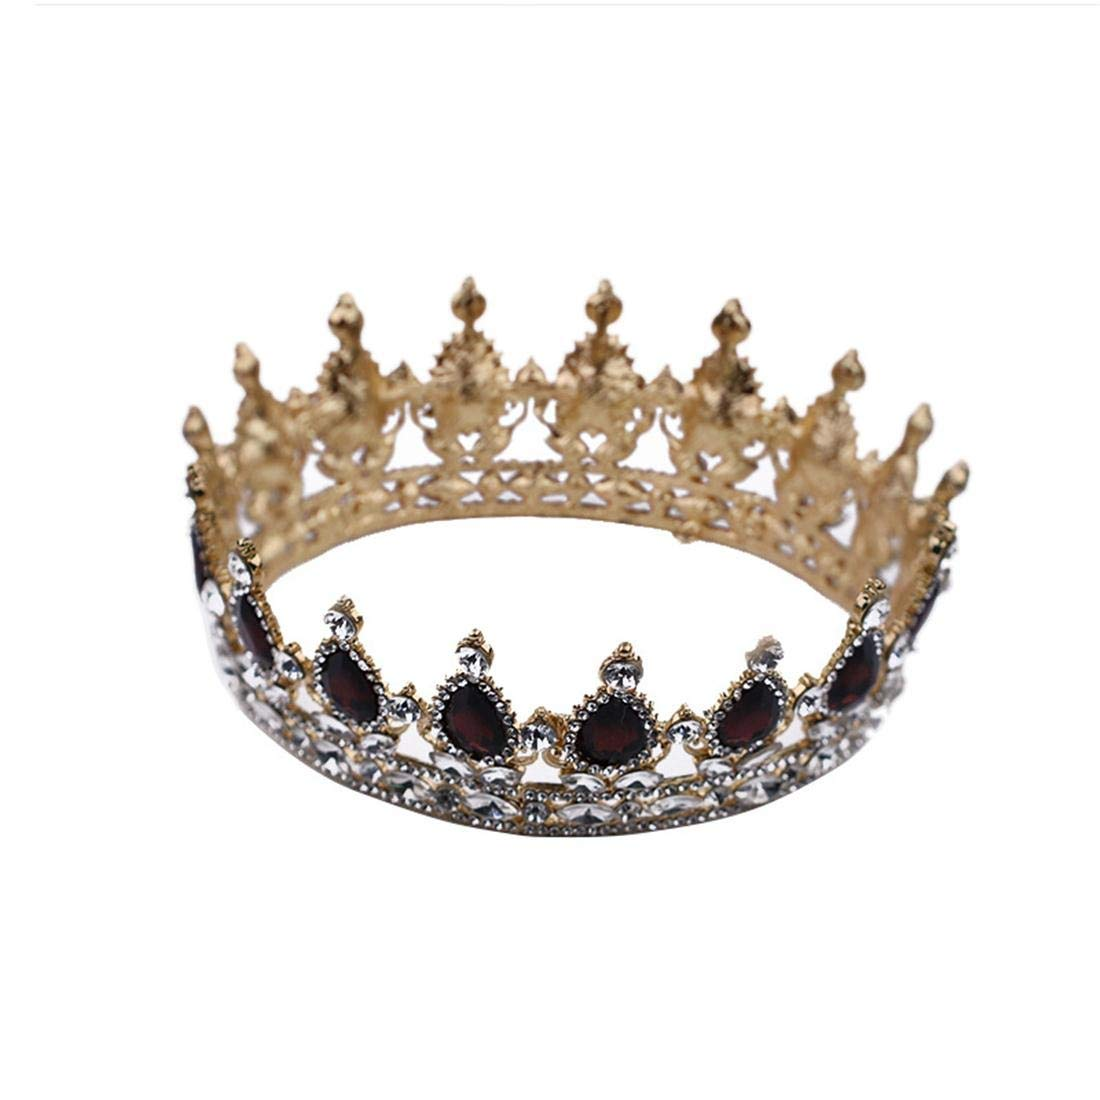 ZYDP Jeweled Baroque Queen Crown - Rhinestone Wedding Crowns and Tiaras for Women, Costume Party Hair Accessories (Color : Golden) by ZYDP